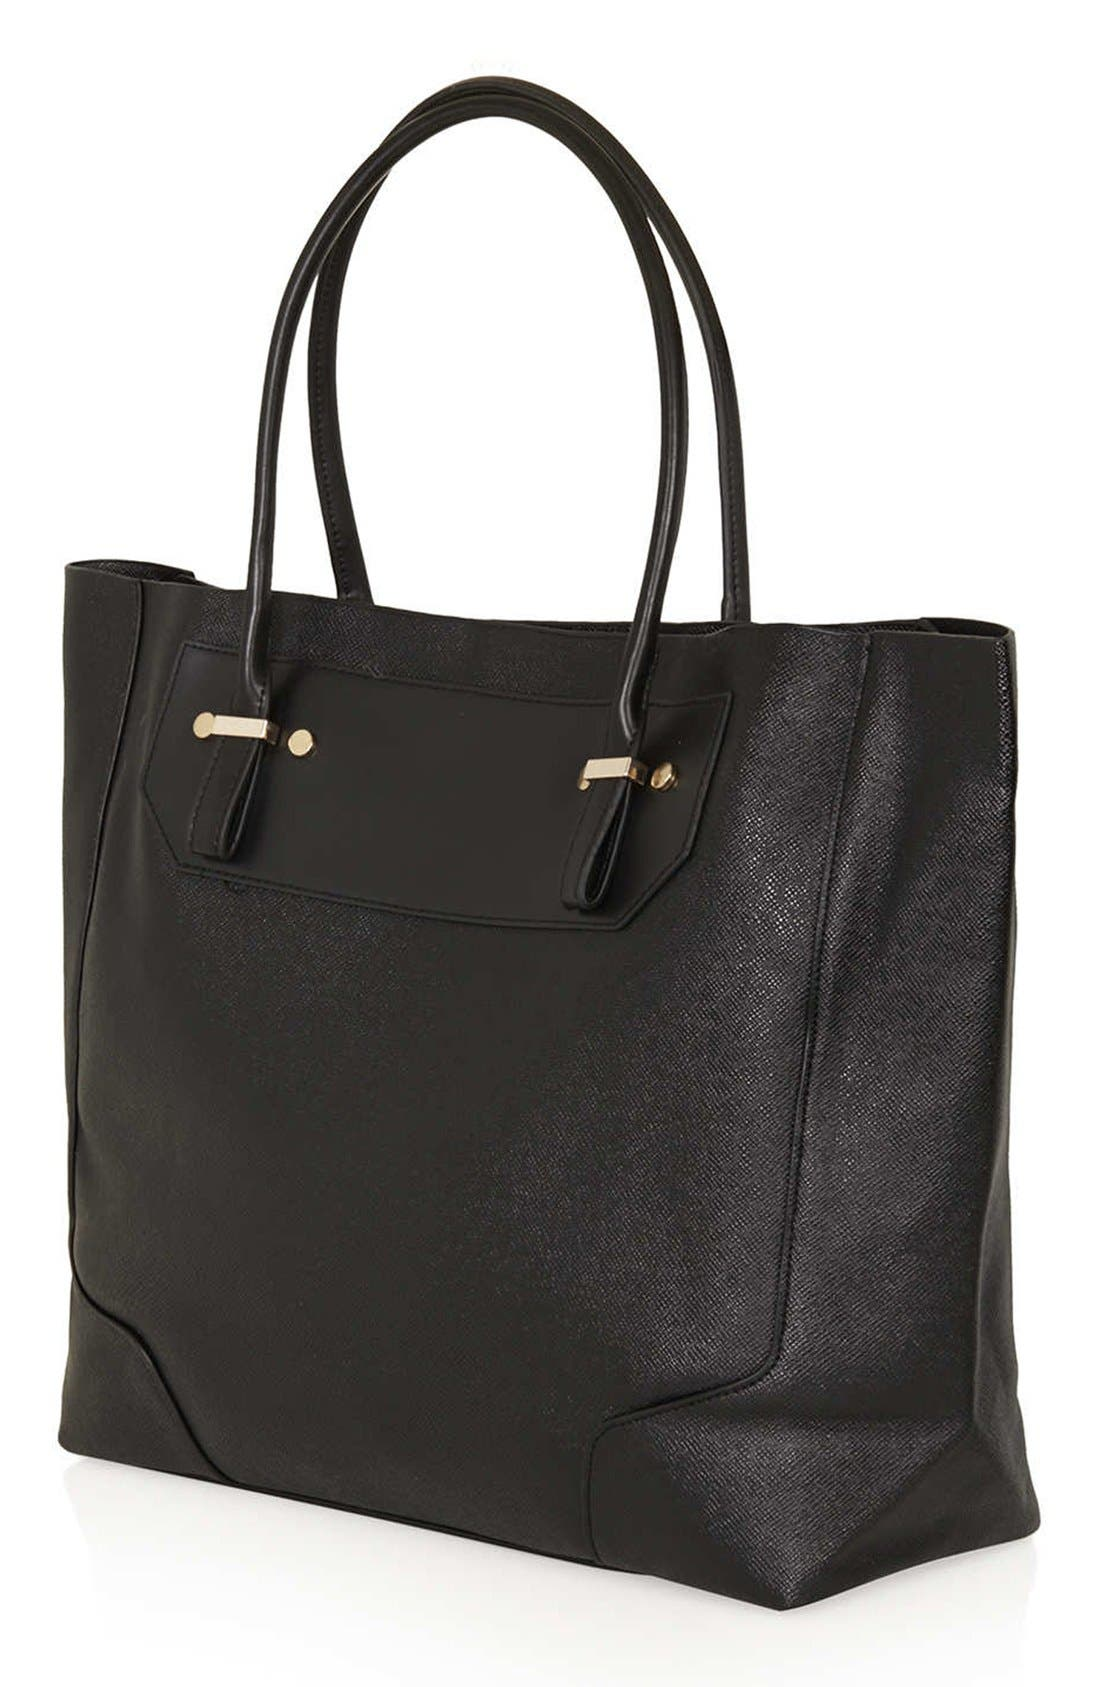 TOPSHOP, Faux Leather Tote, Alternate thumbnail 2, color, 001